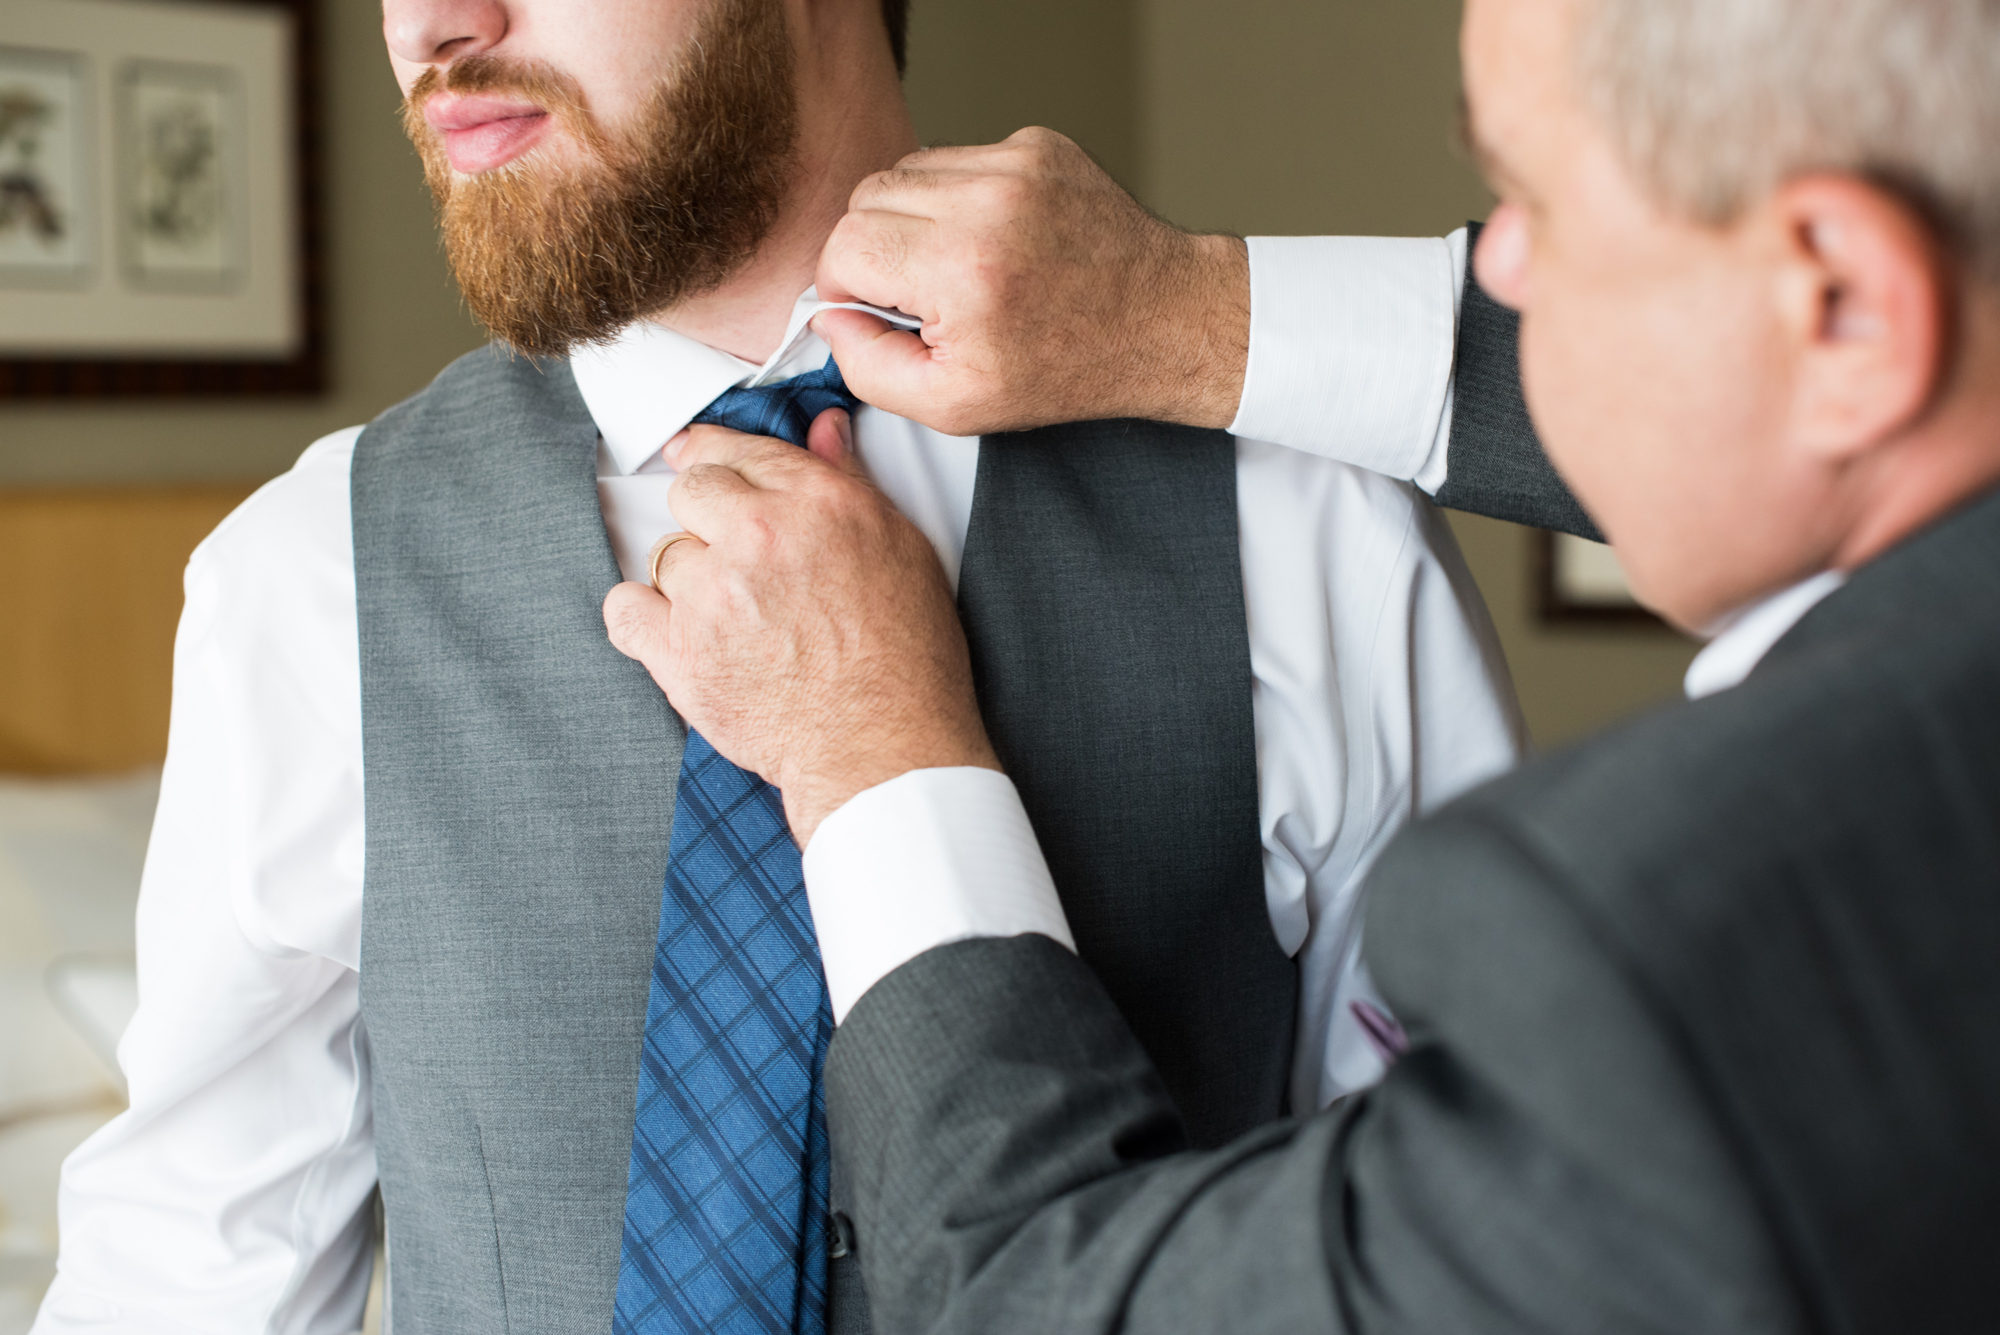 Groom Father Prep Tie Wedding King City Zsuzsi Pal Photography